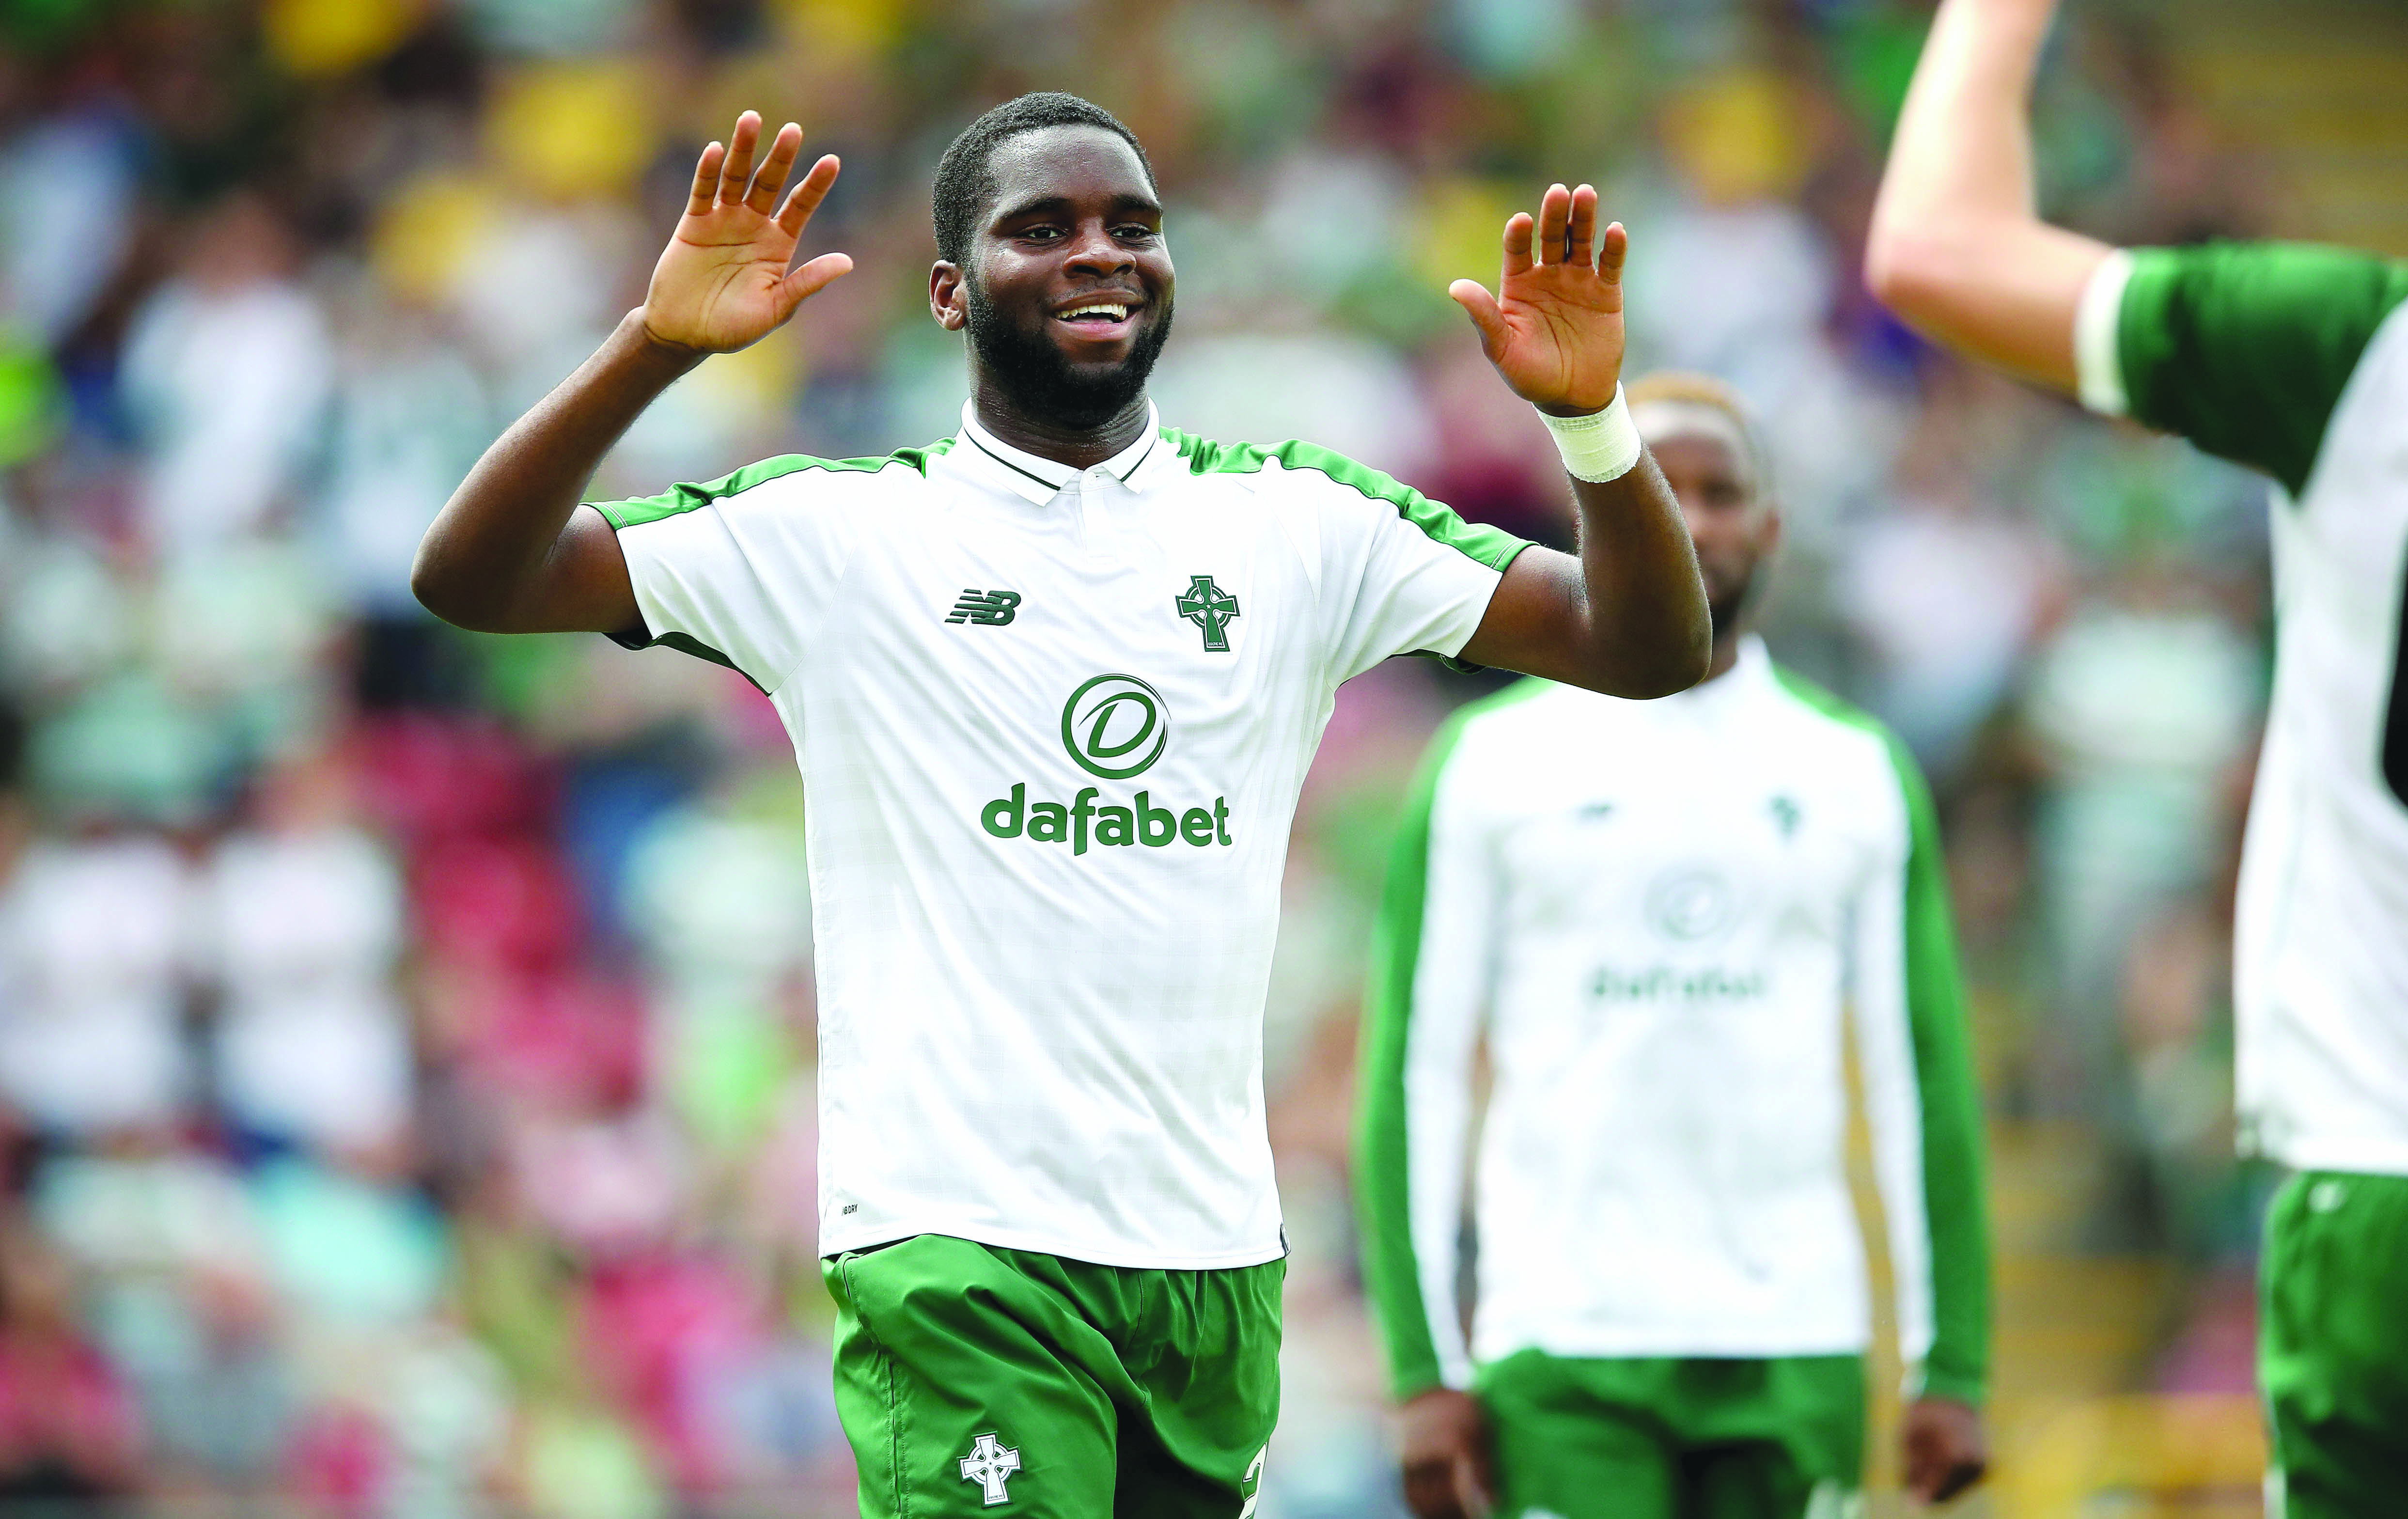 Odsonne Edouard found the net for the sixth-straight game at the weekend but this will only help secure a larger transfer fee when the French striker inevitably departs in the summer